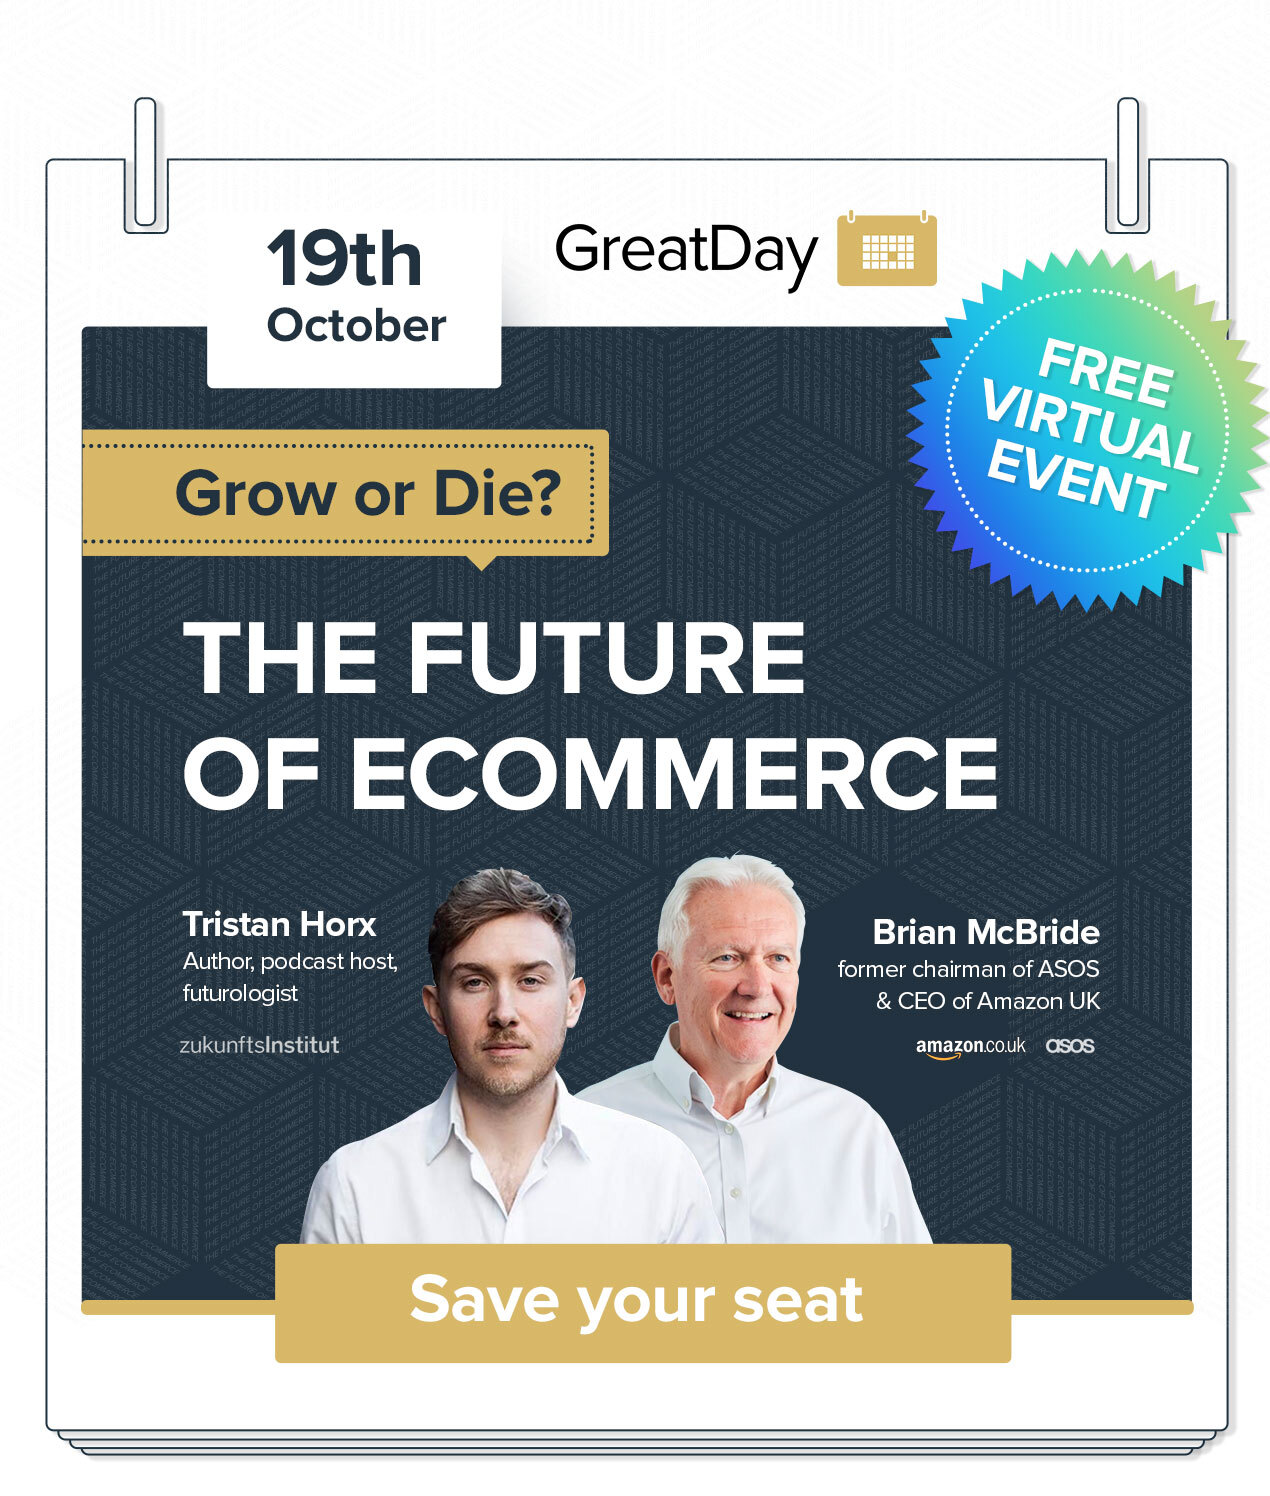 Great Day for Ecommerce Growth event illustration